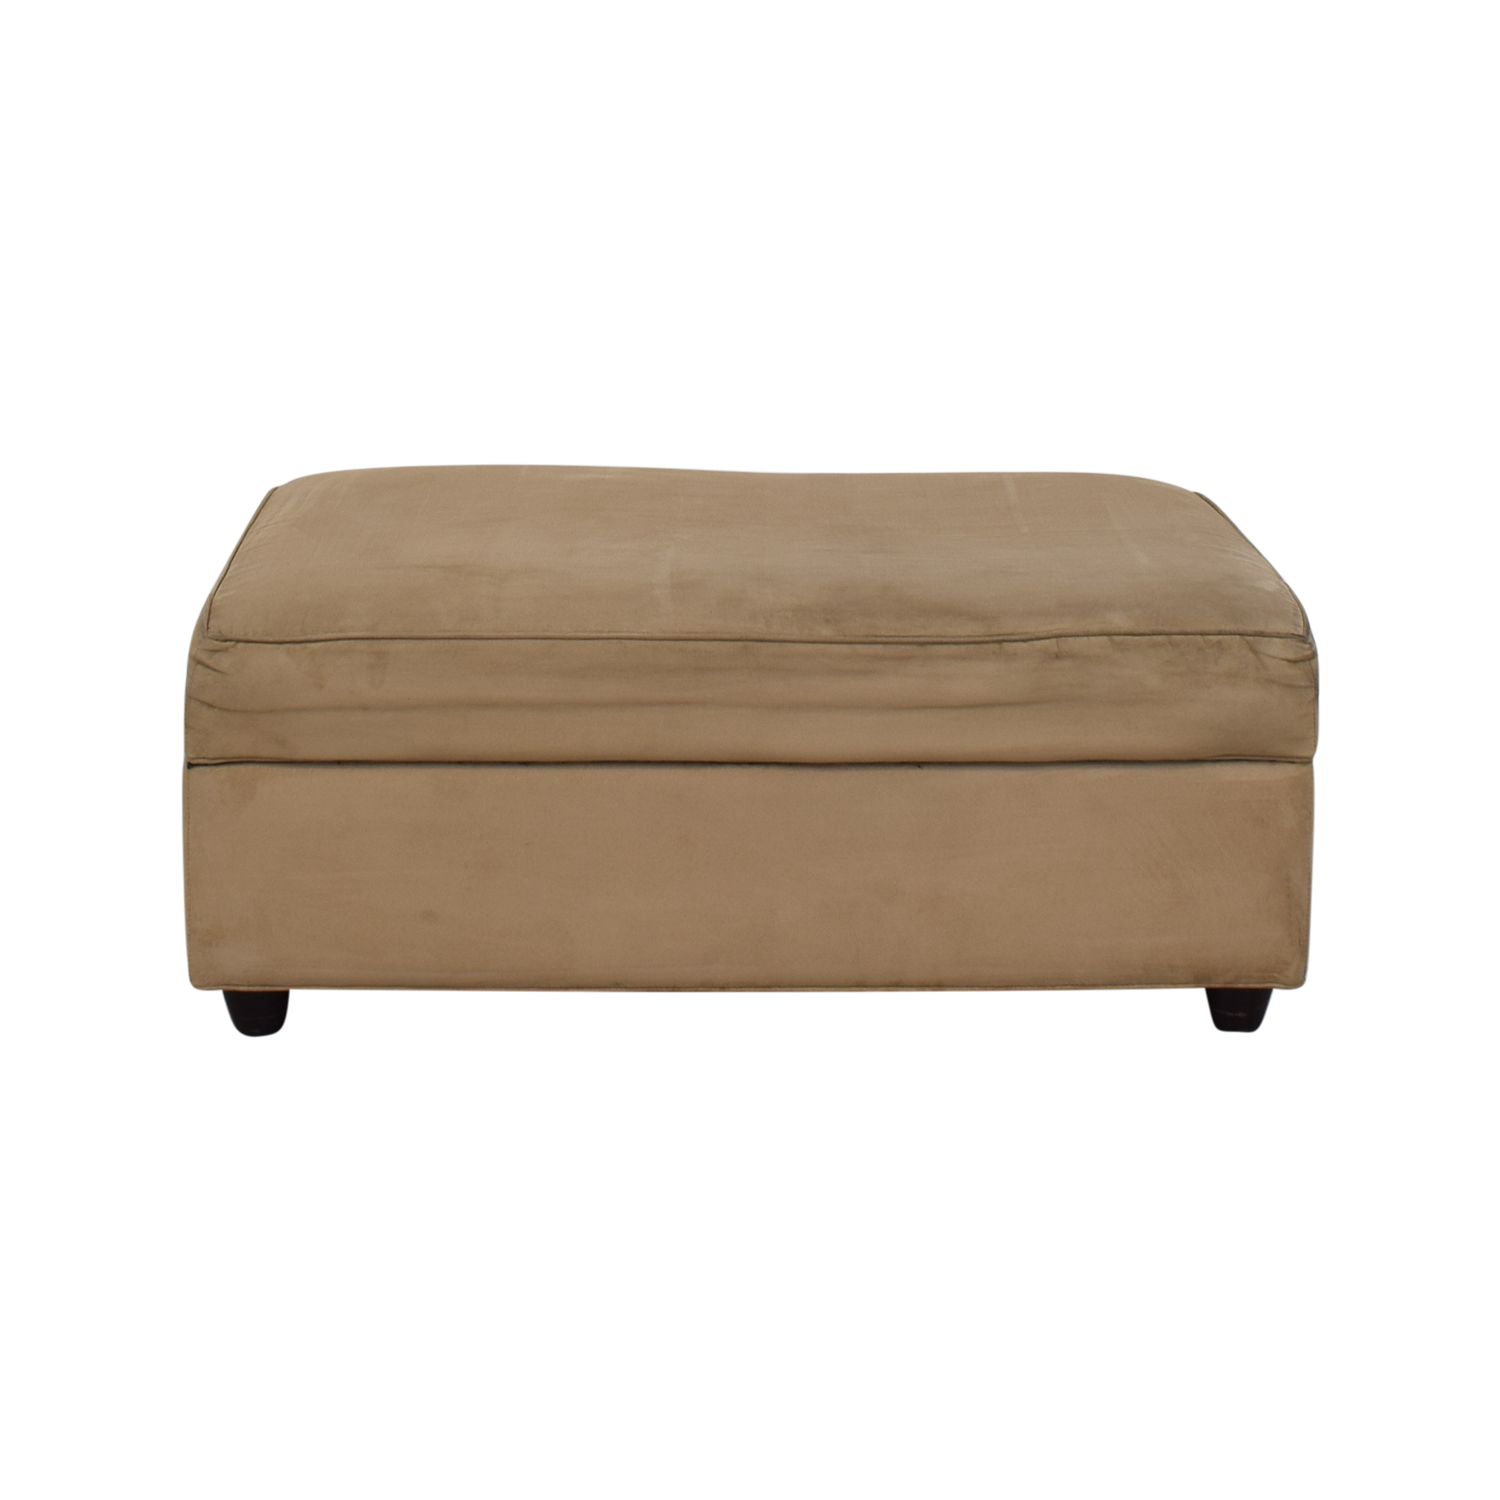 Delicieux Buy Crate U0026 Barrel Storage Ottoman Crate U0026 Barrel Ottomans